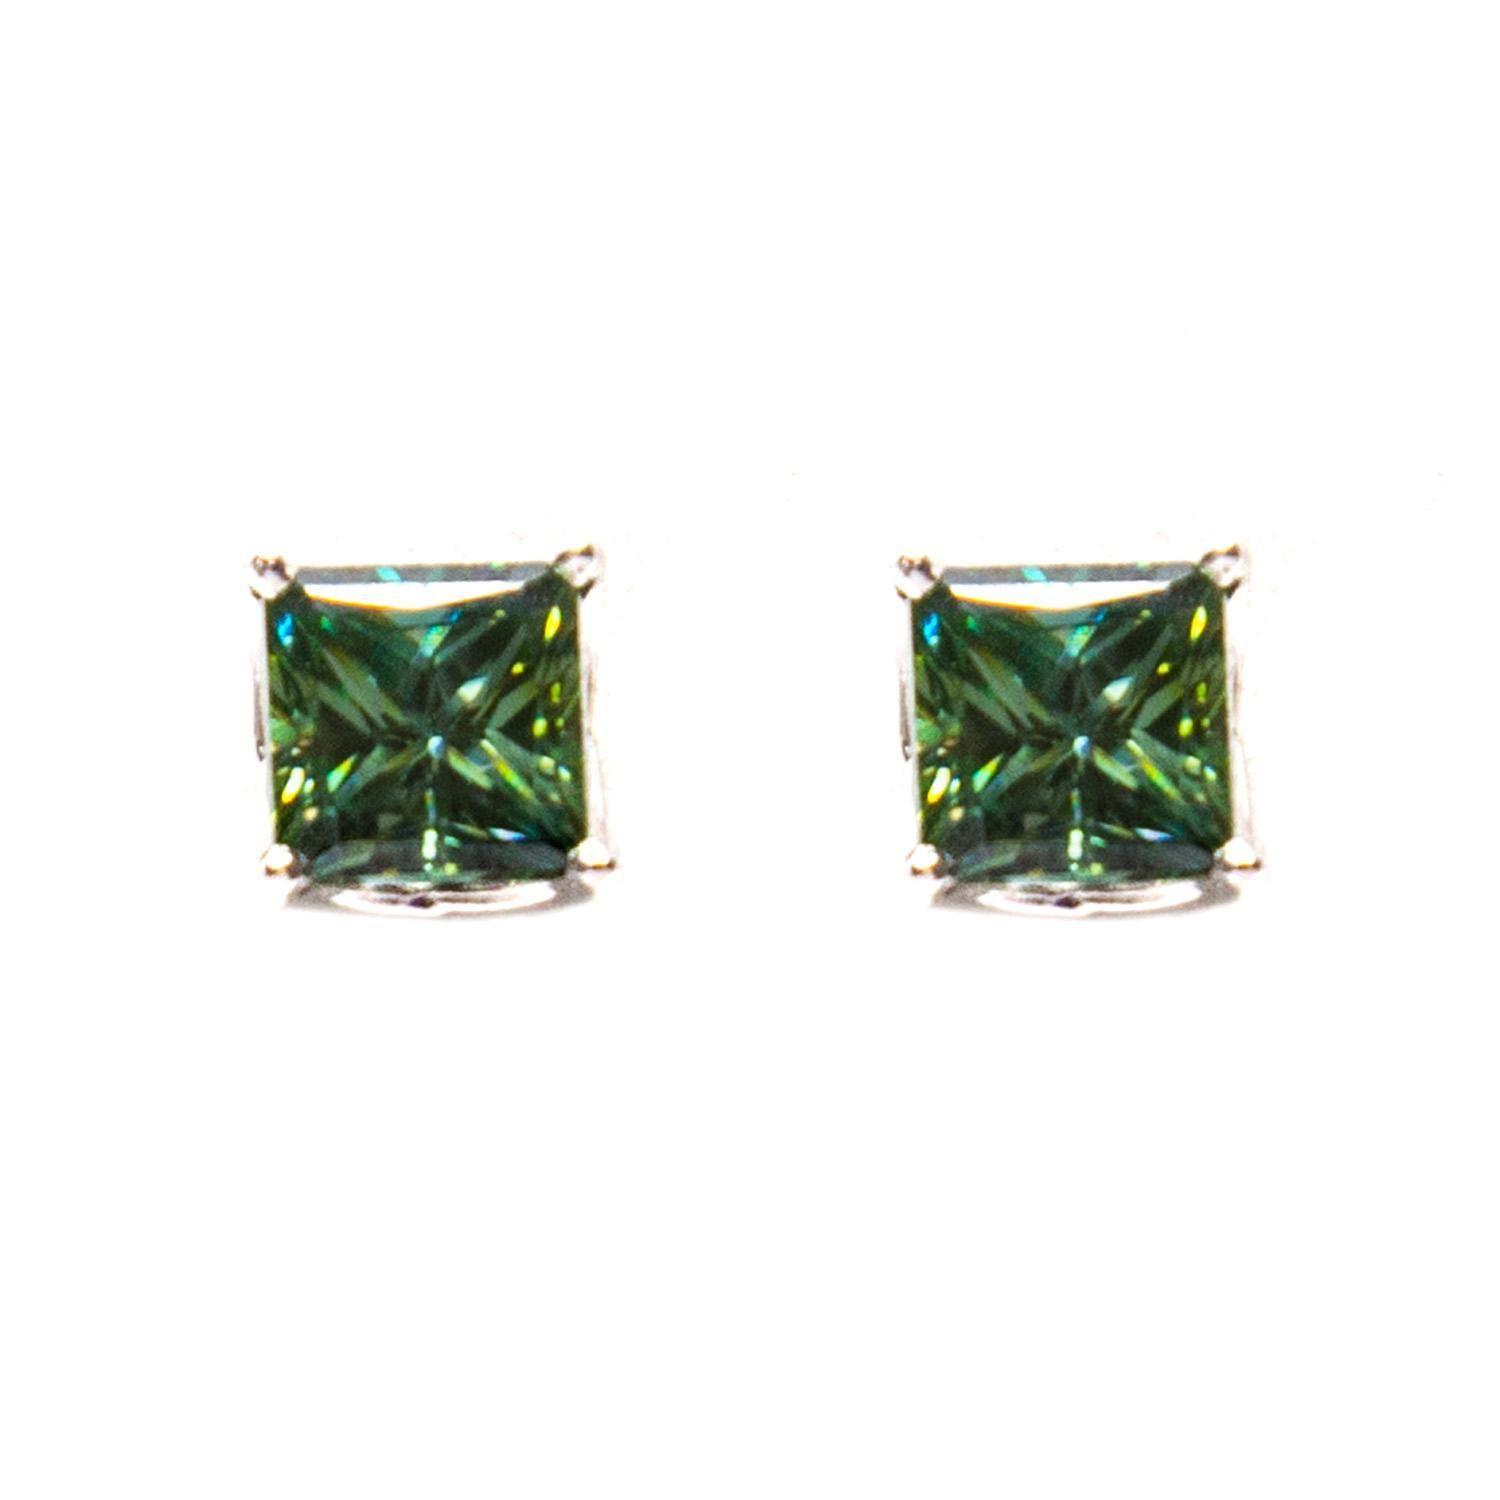 stunning arkwright earrings uk lily free pin moissanite delivery by one charles colvard forever stud